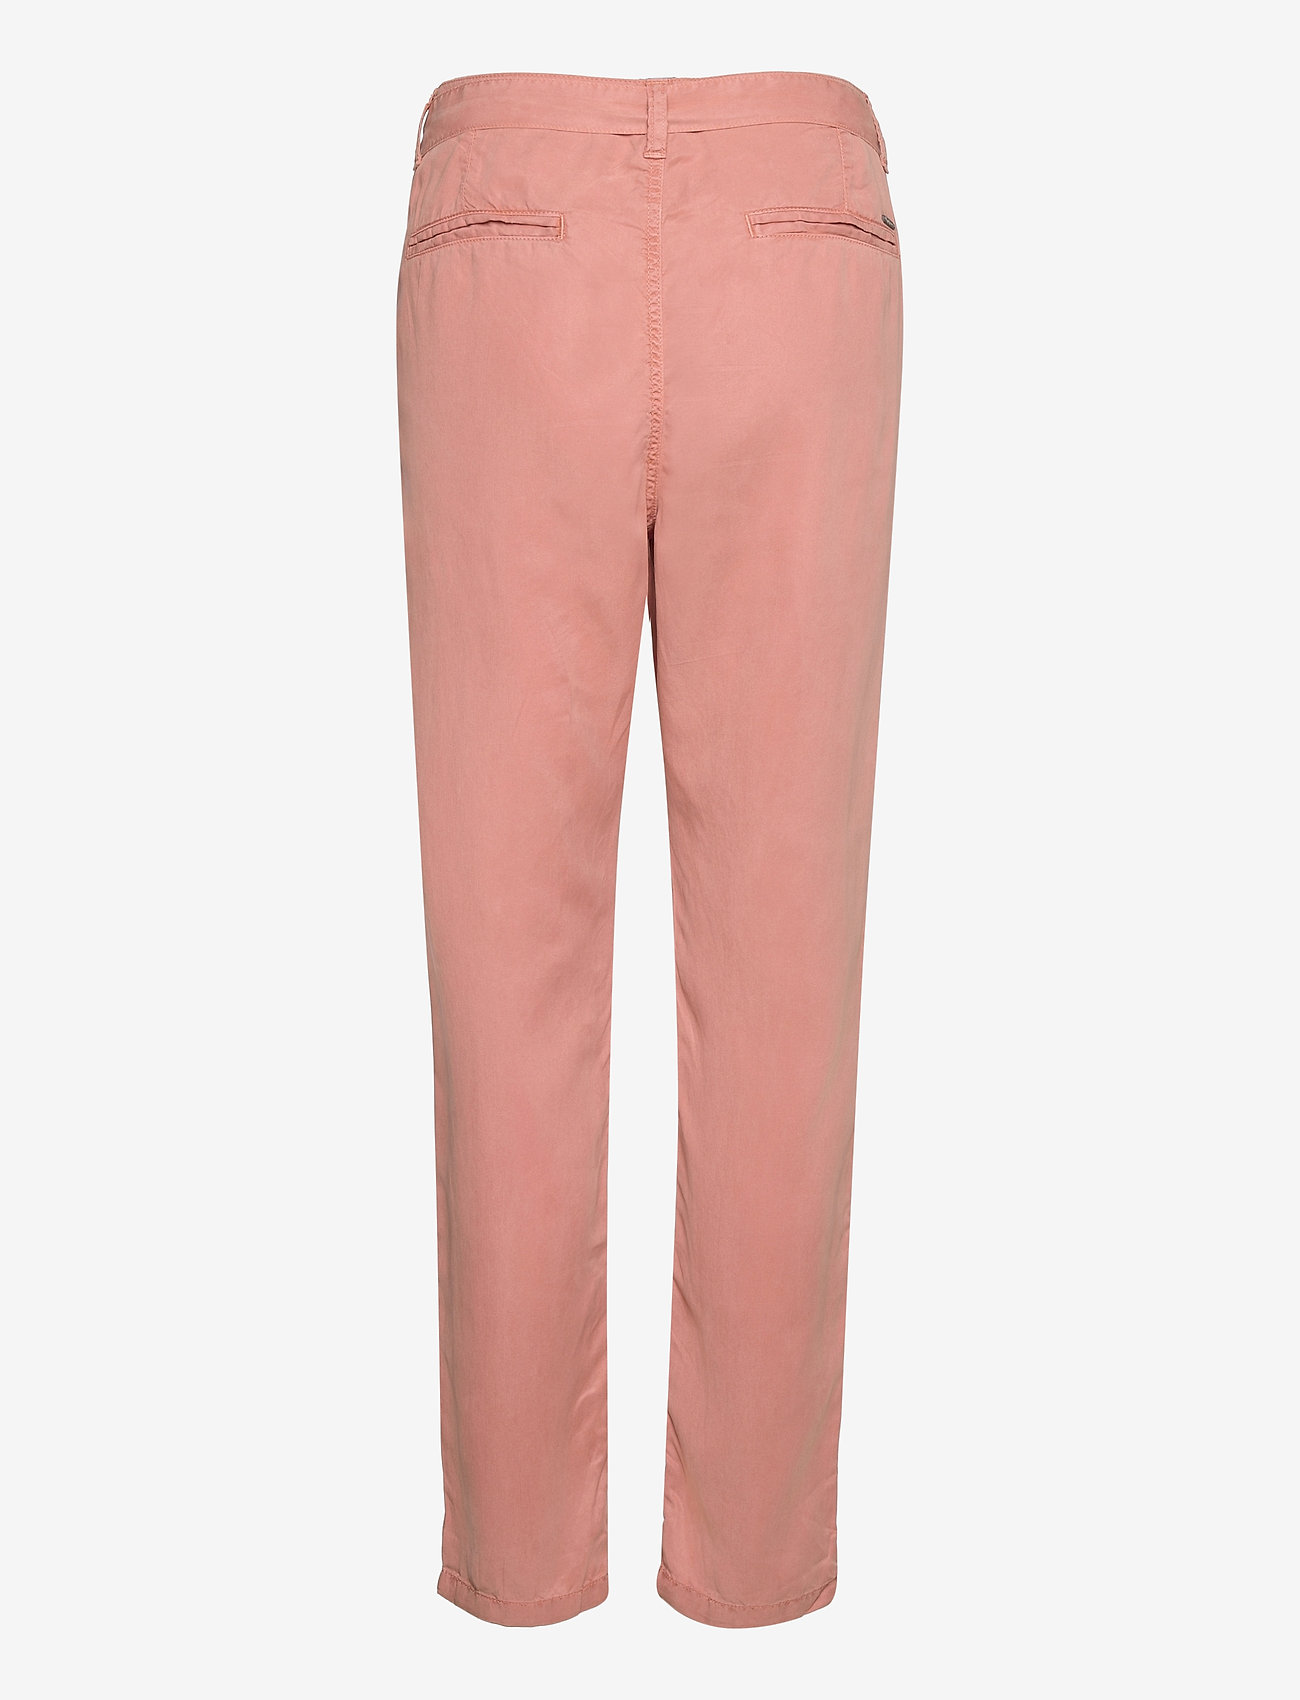 Pepe Jeans London - DRIFTER - straight leg trousers - washed pink - 1